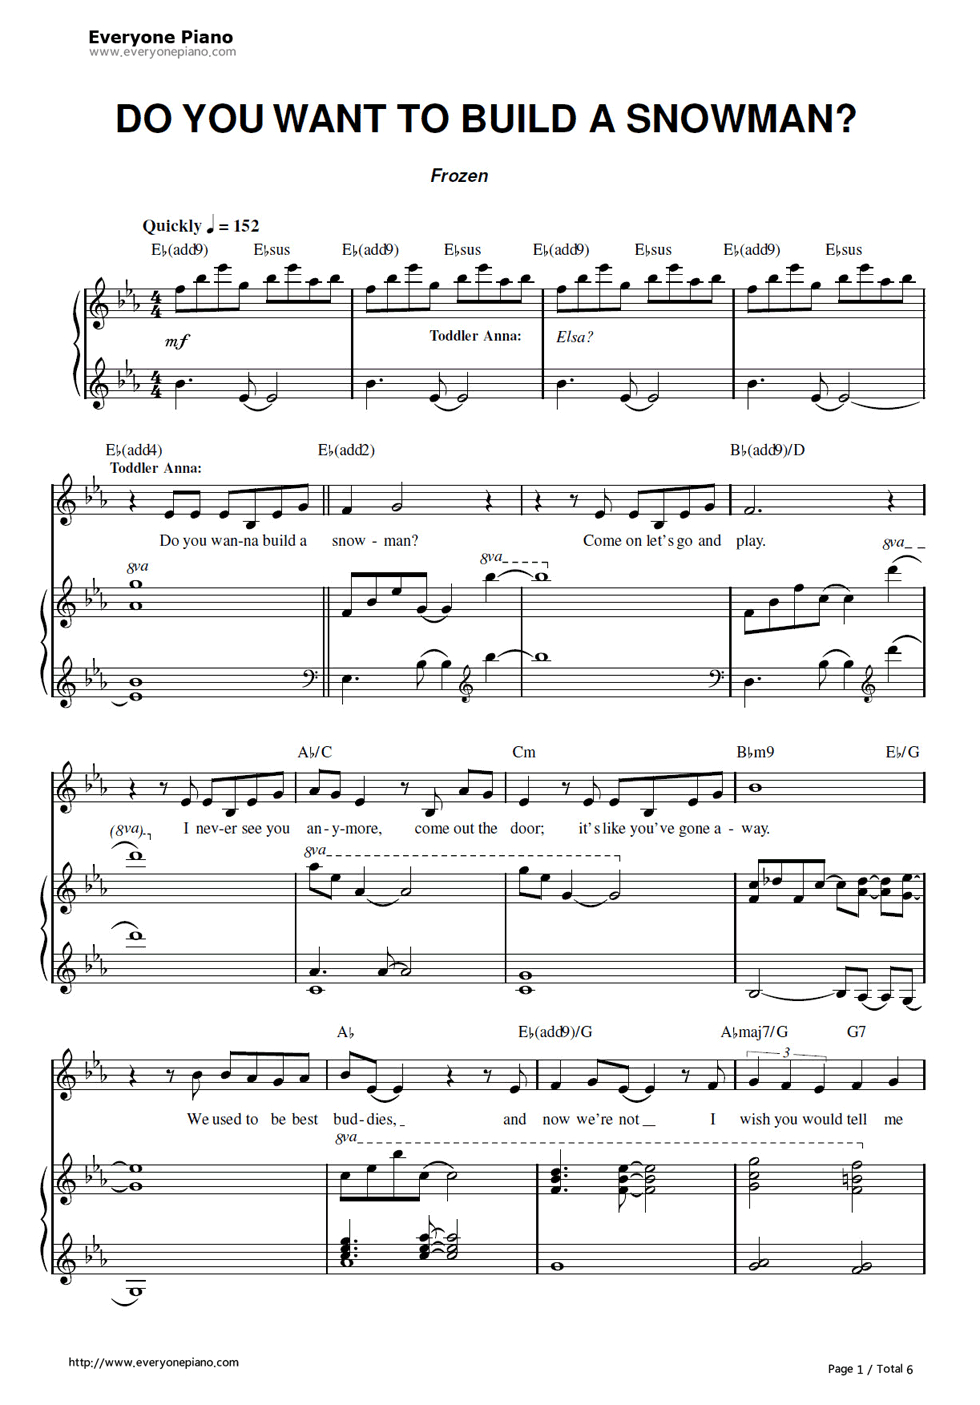 Free Do You Want To Build A Snowman-Frozen Ost Sheet Music Preview 1 - Let It Go Violin Sheet Music Free Printable